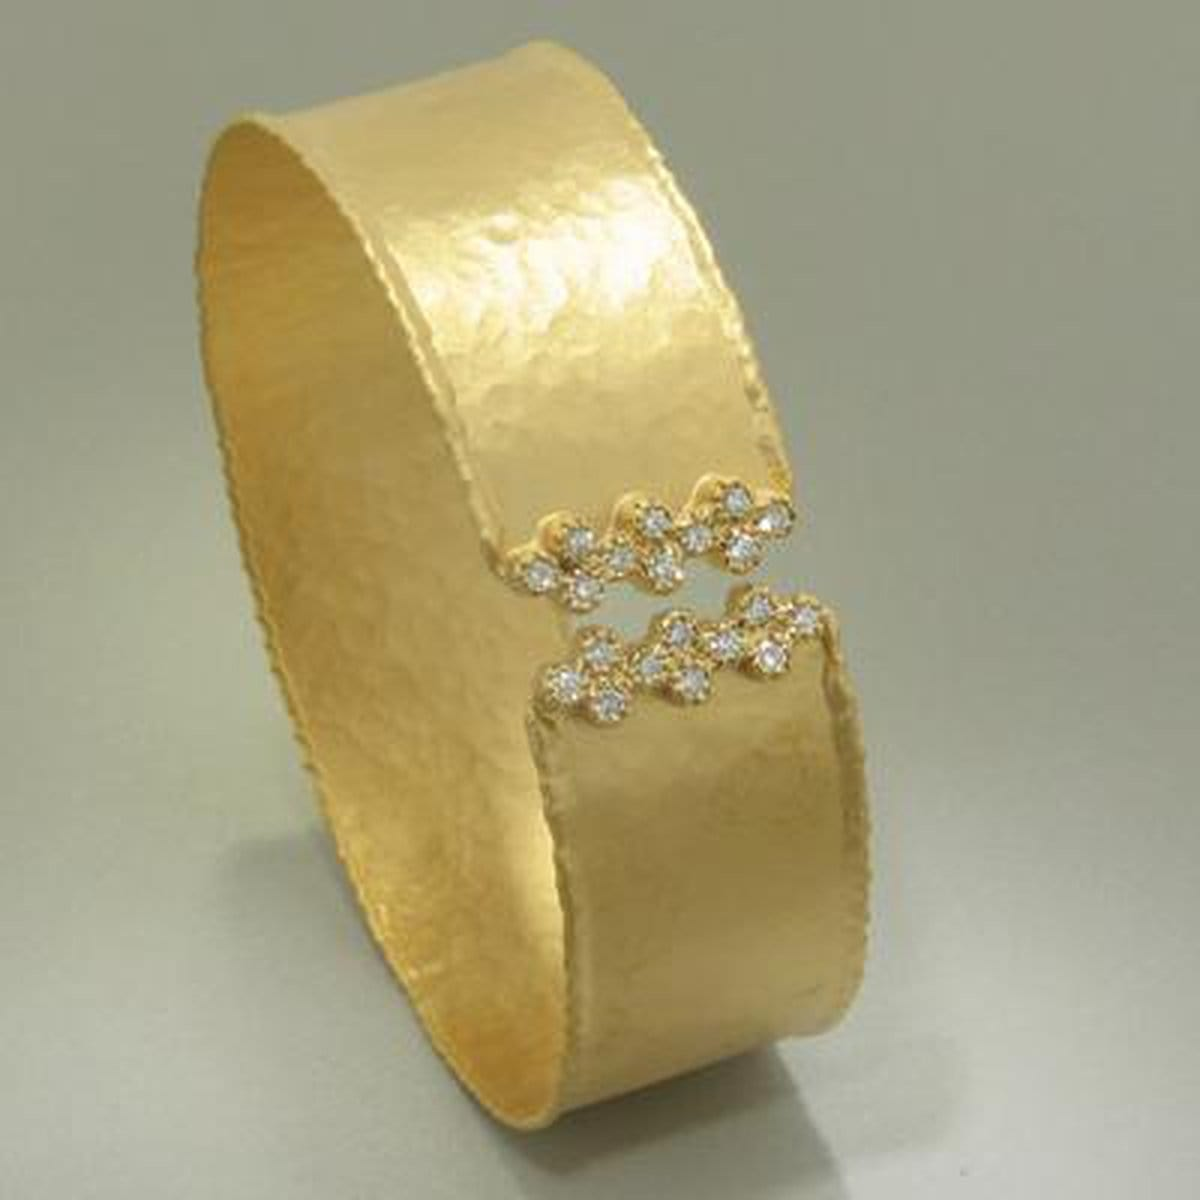 Marika Diamond & 14k Gold Cuff - M3986